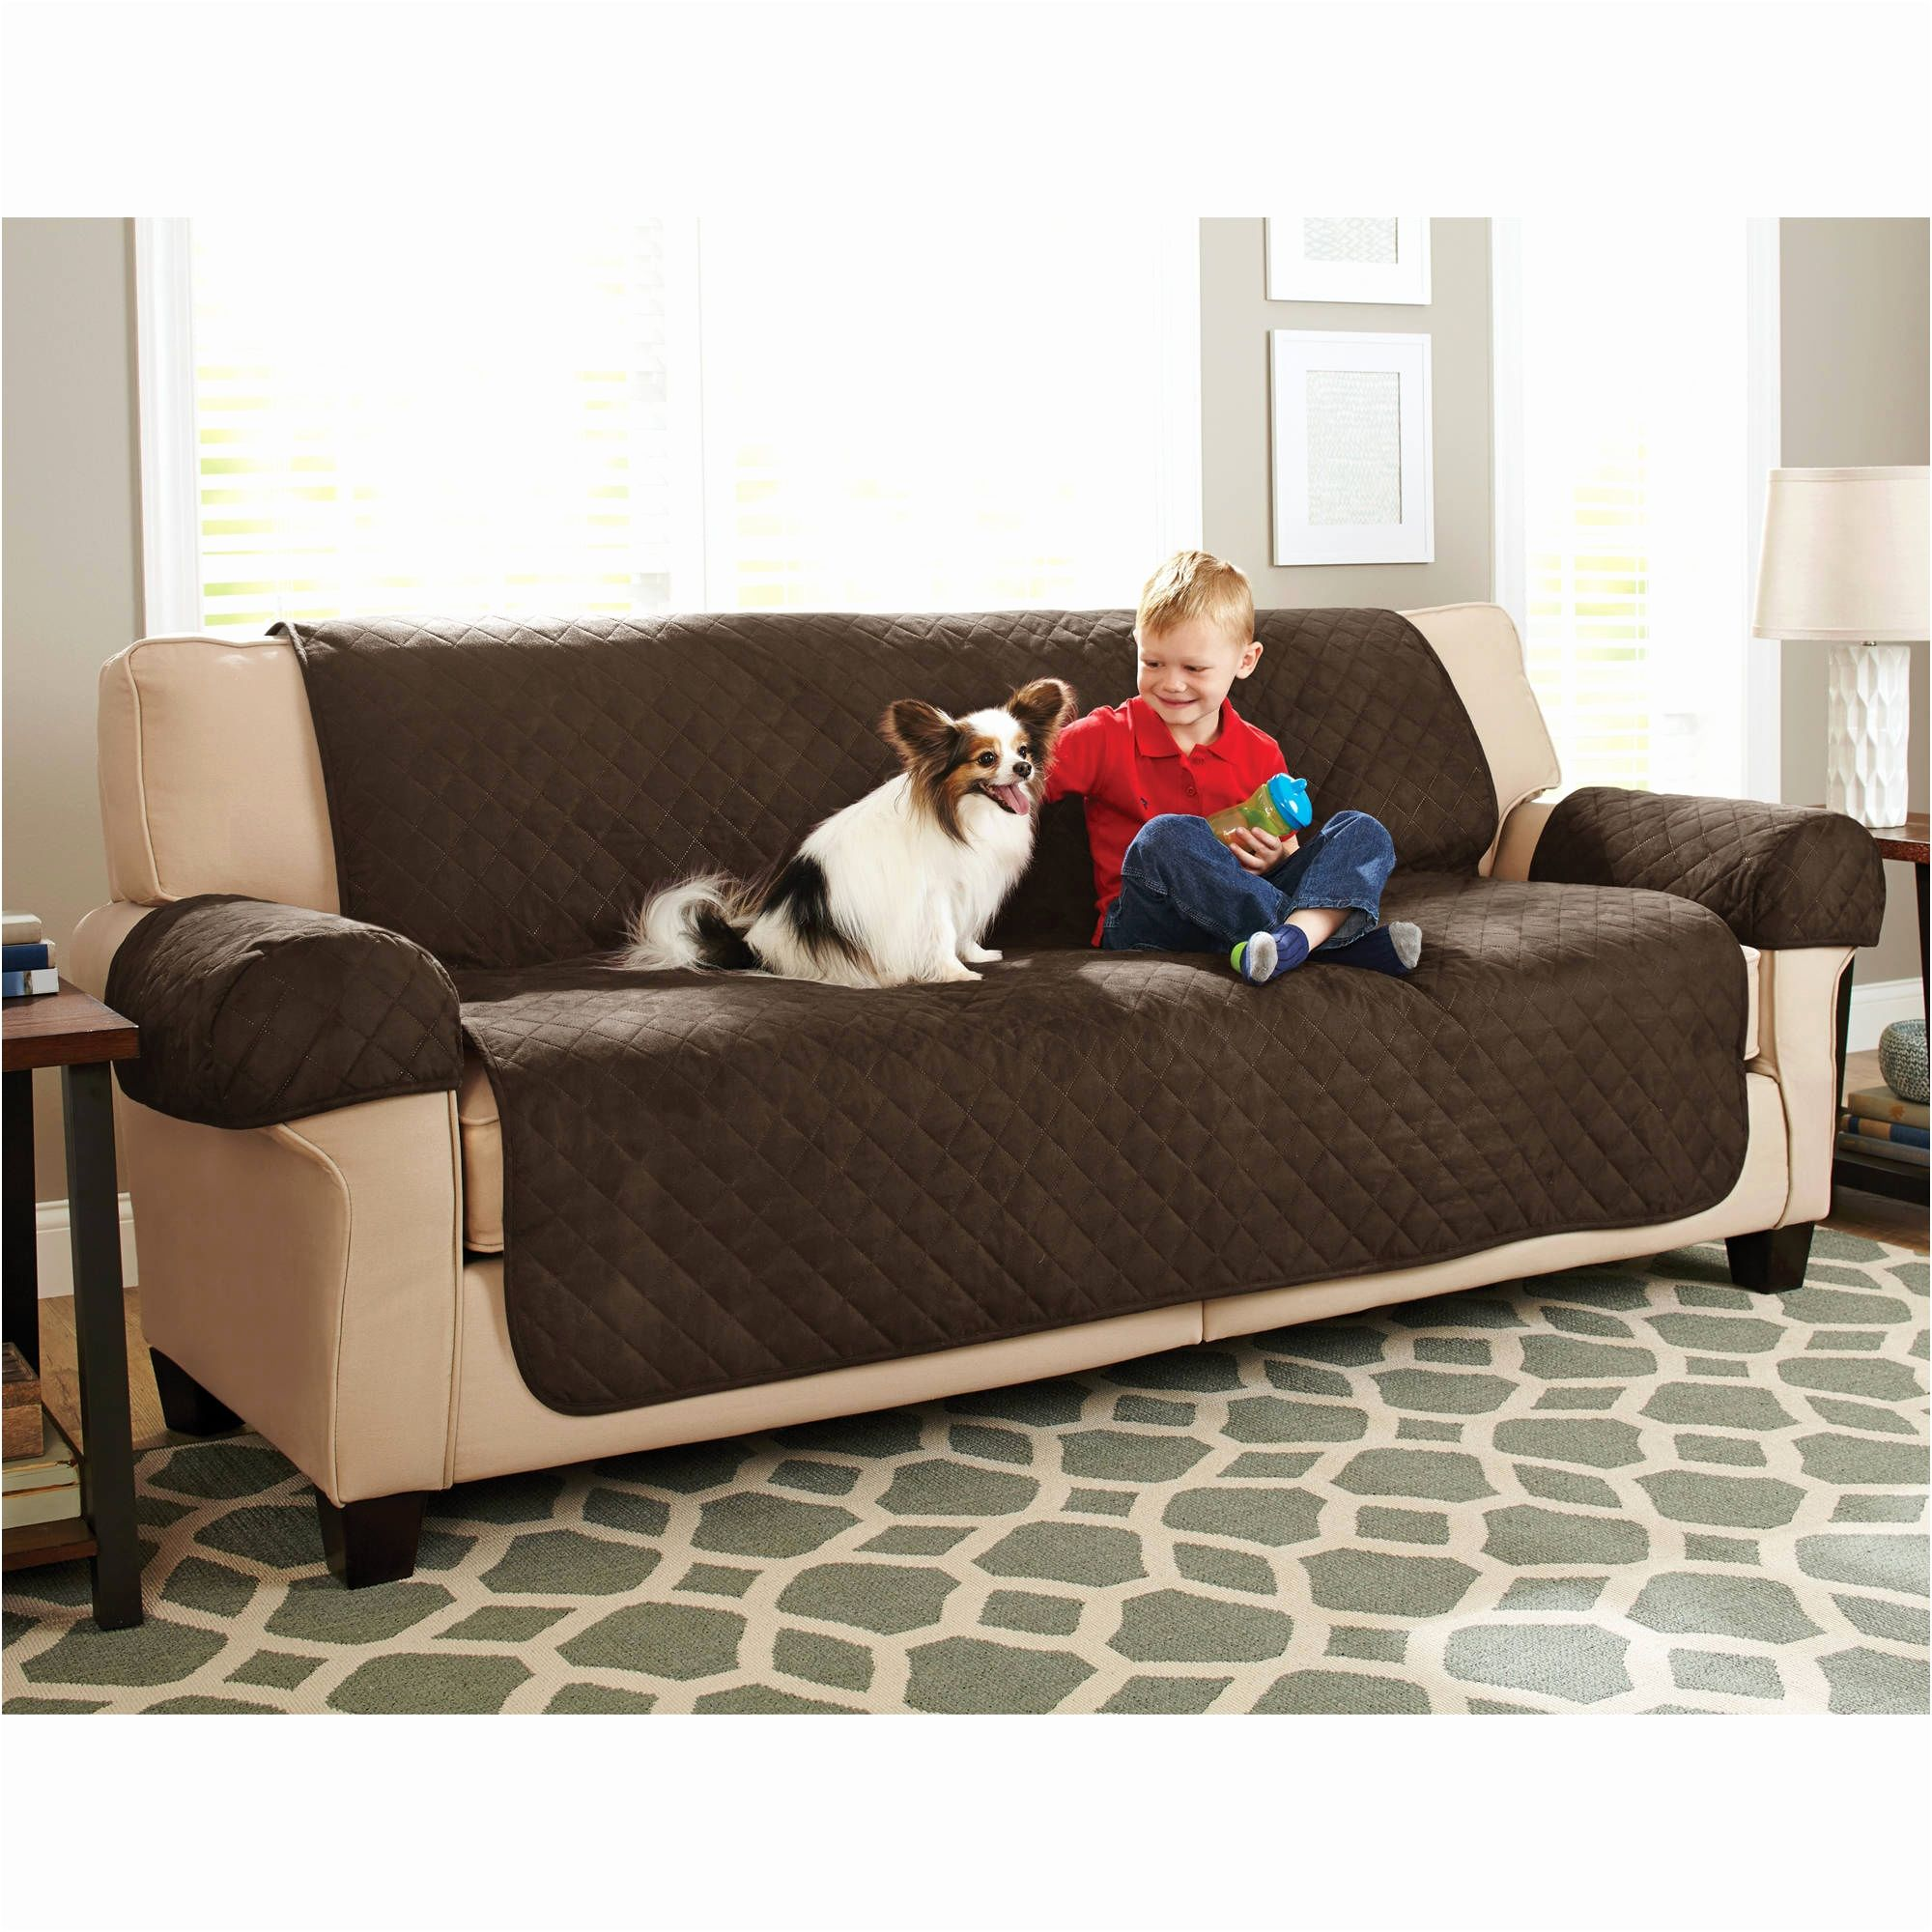 best pet covers for sofas ideas-Cool Pet Covers for sofas Layout